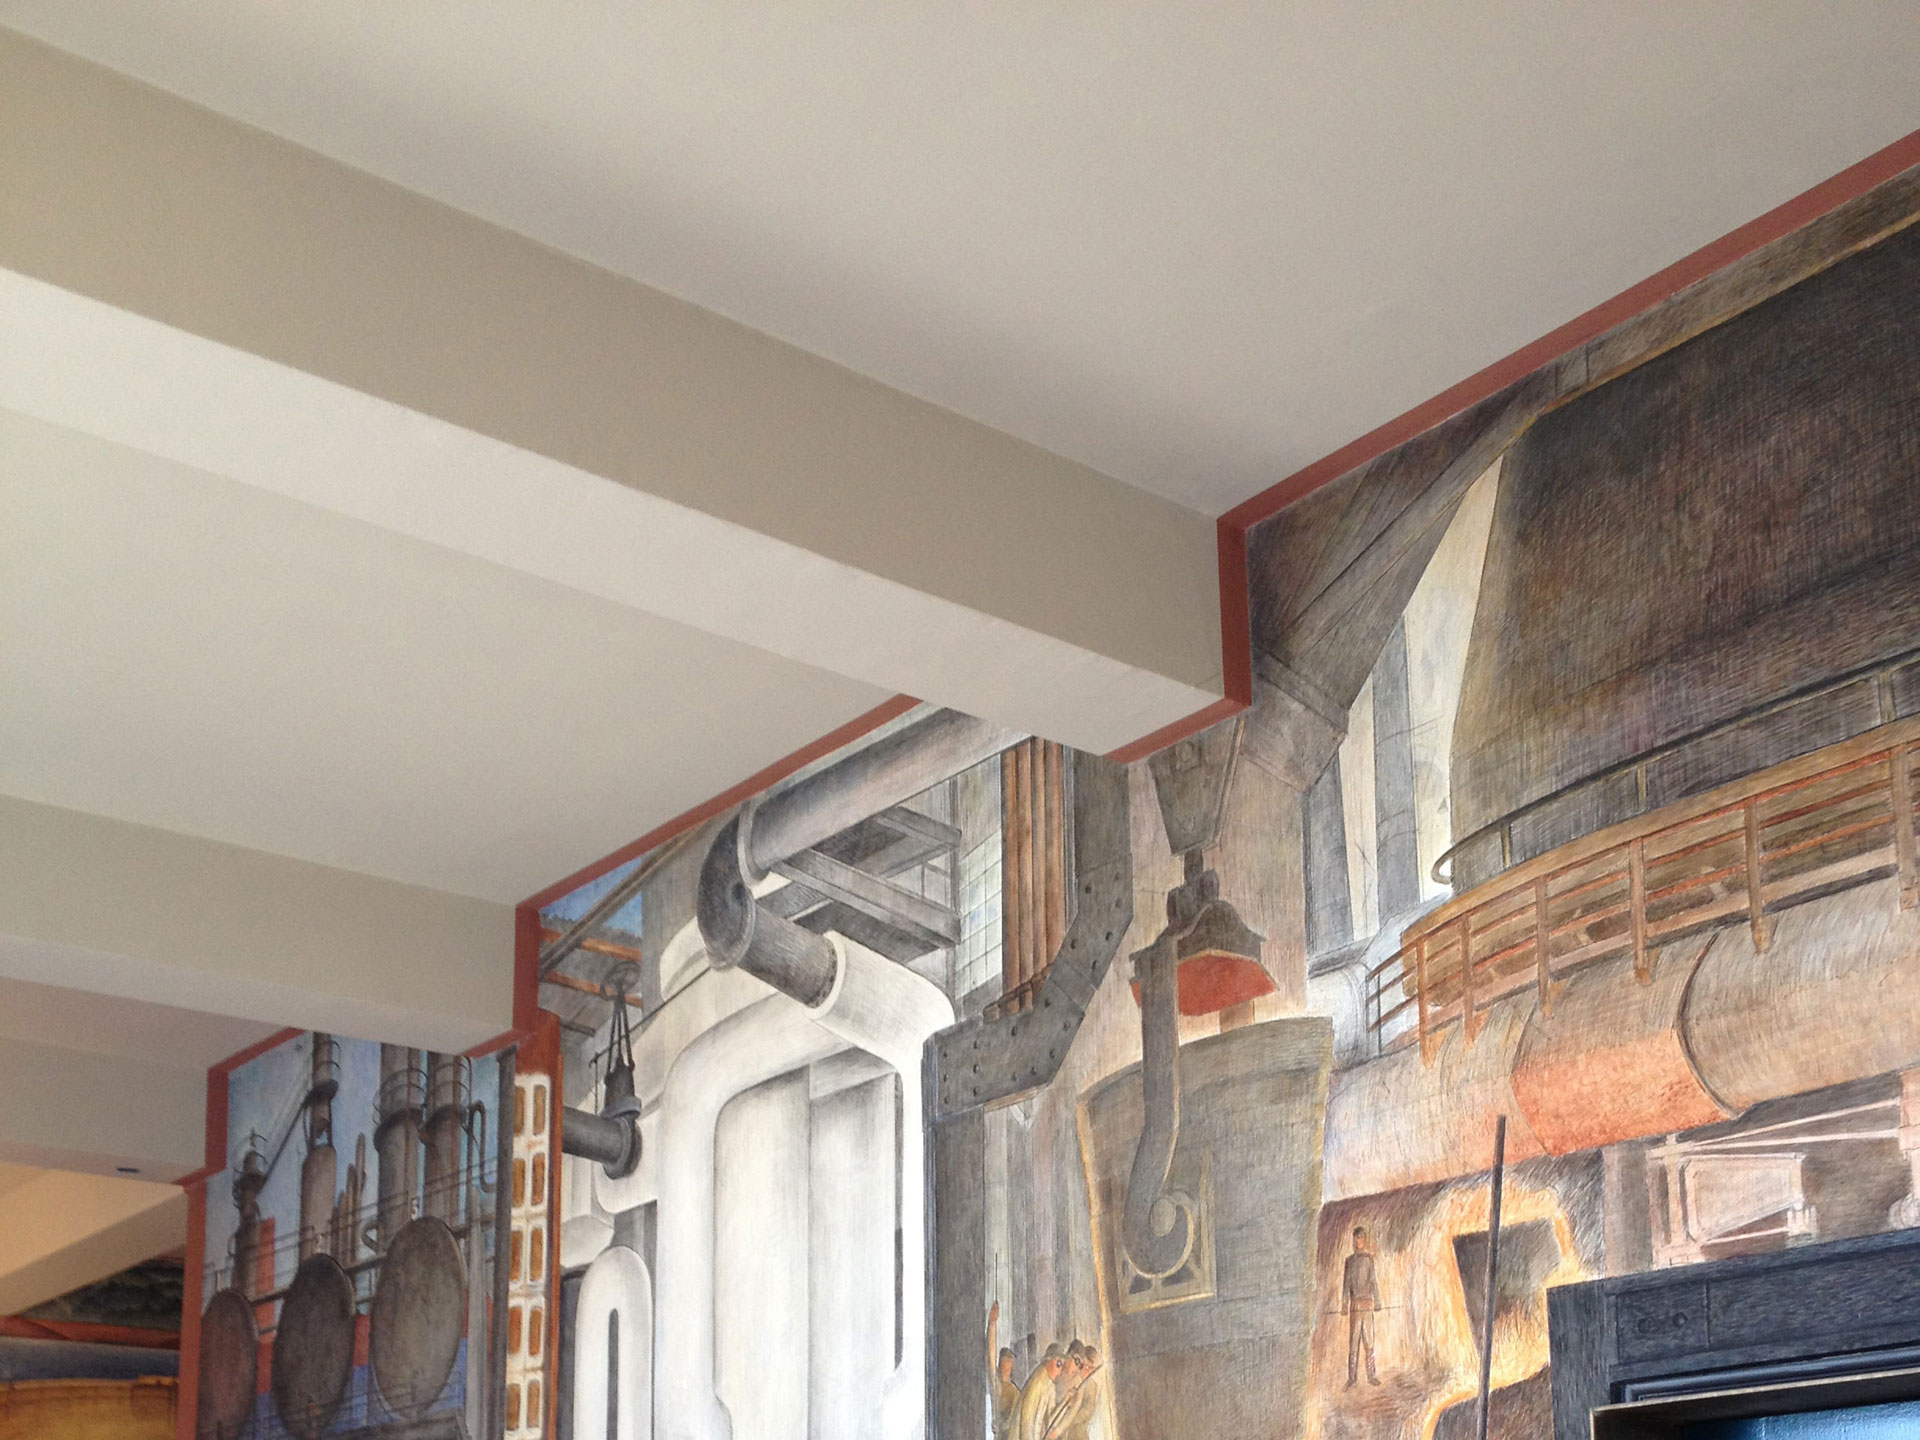 The decorative stripe along the ceiling frames the piece as a whole.